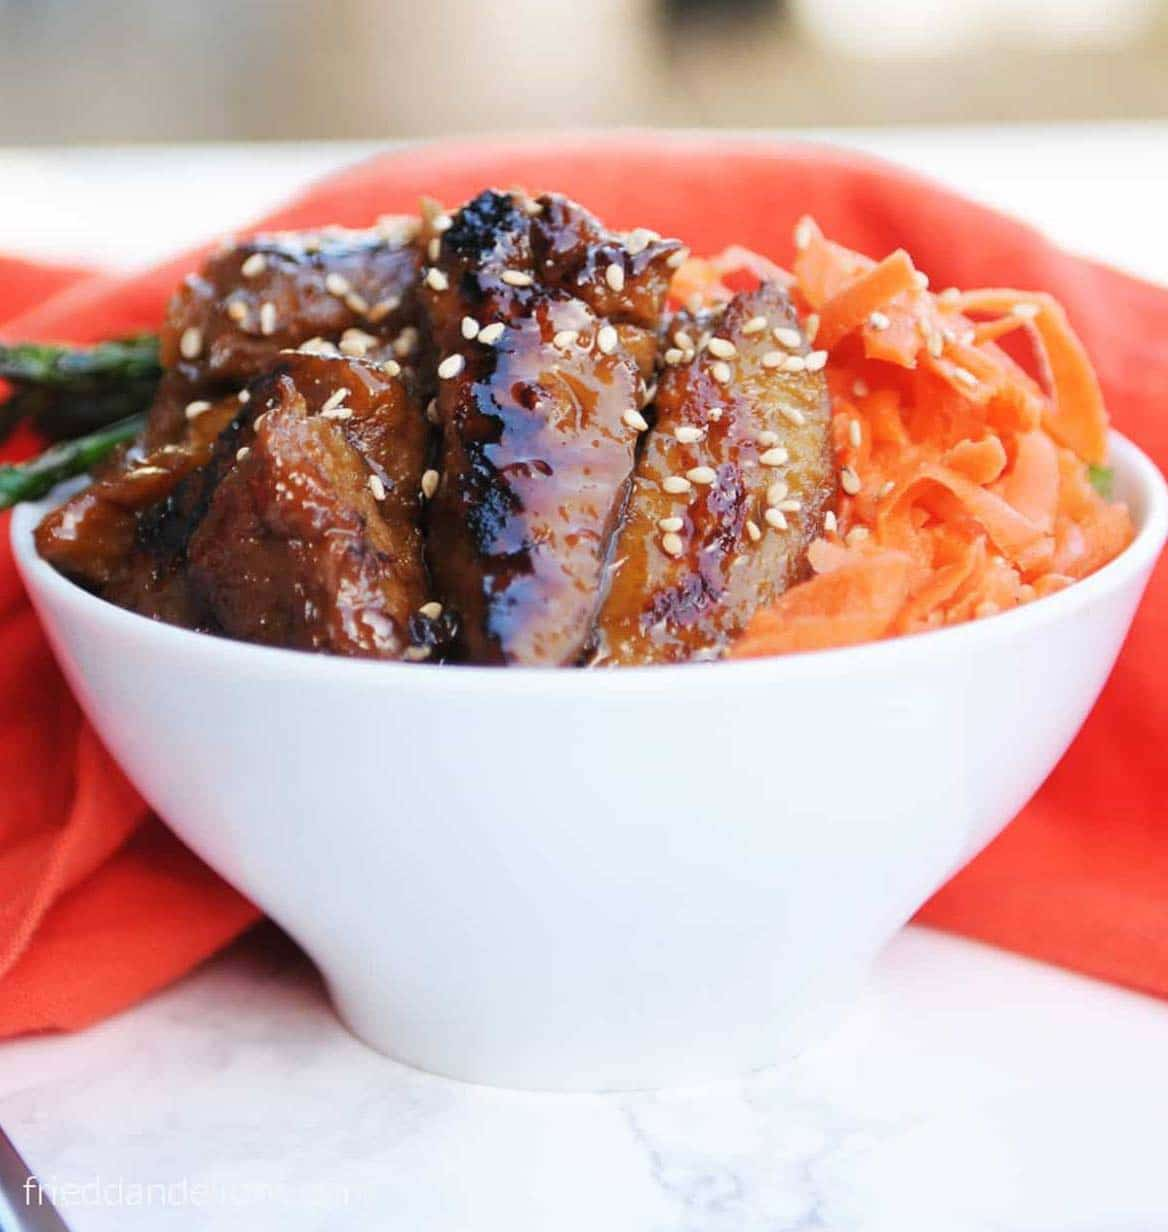 Teriyaki seitan by Fried Dandelions